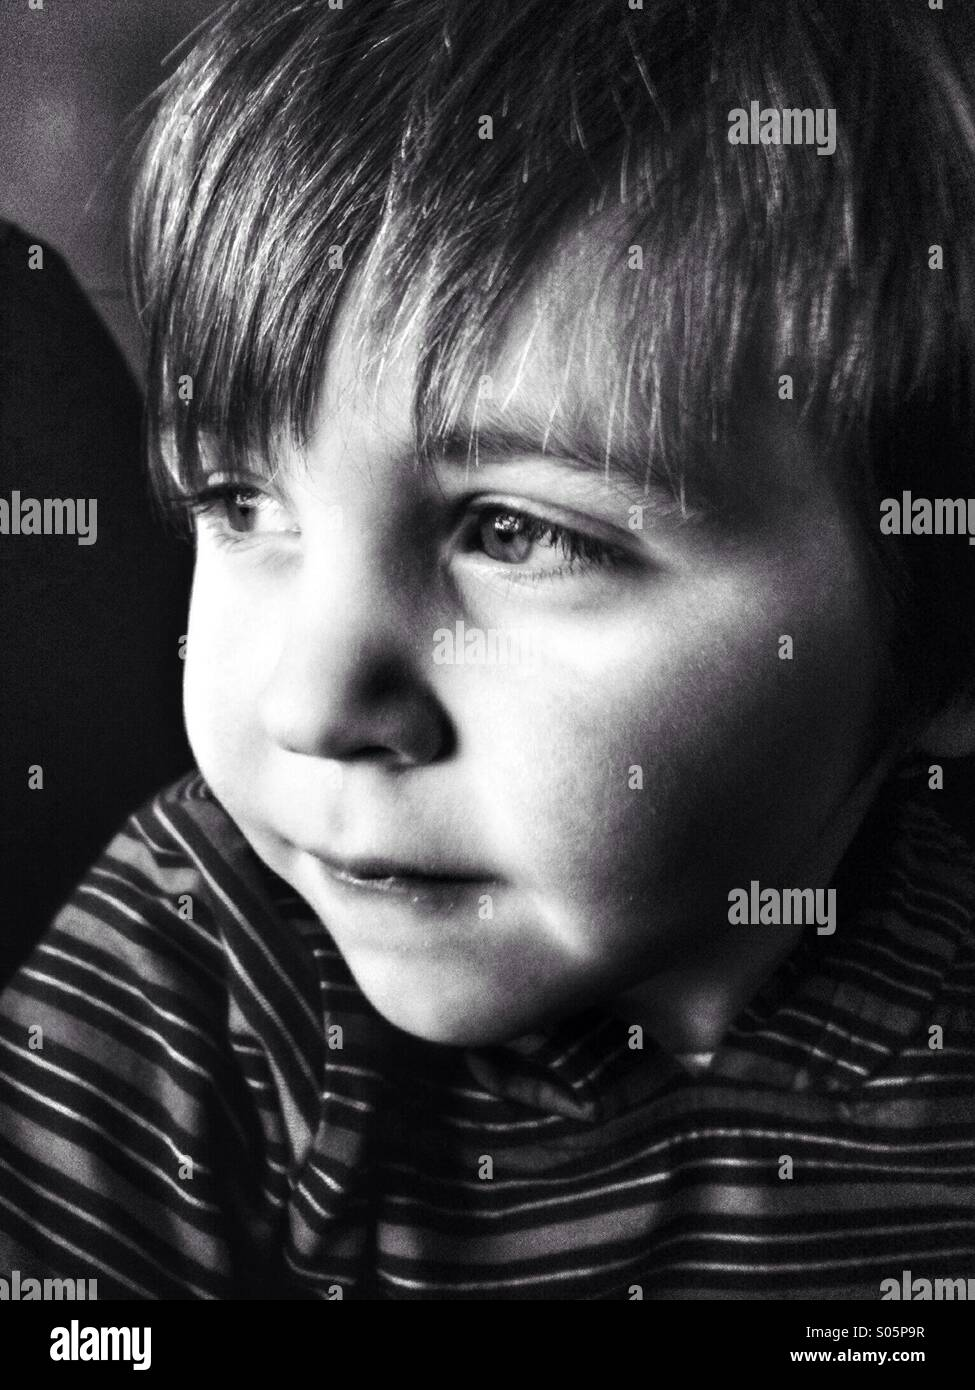 Young Caucasian toddler boy portrait. - Stock Image